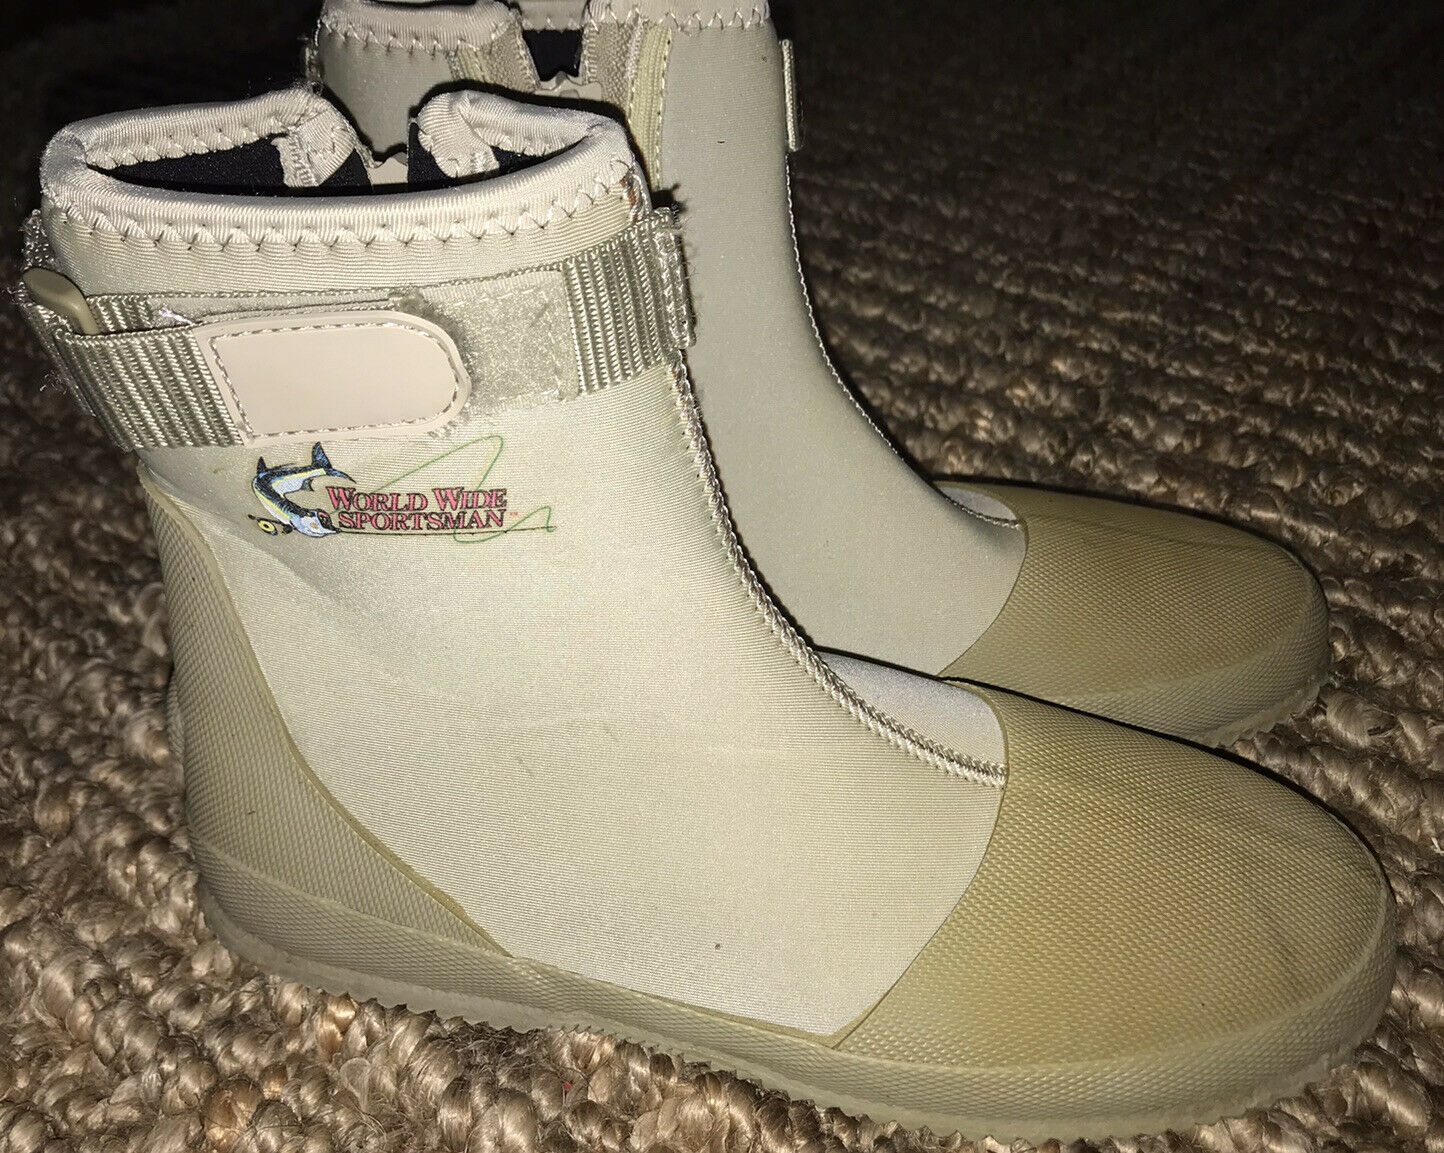 World Wide Sportsman Wading BOOTS Mens